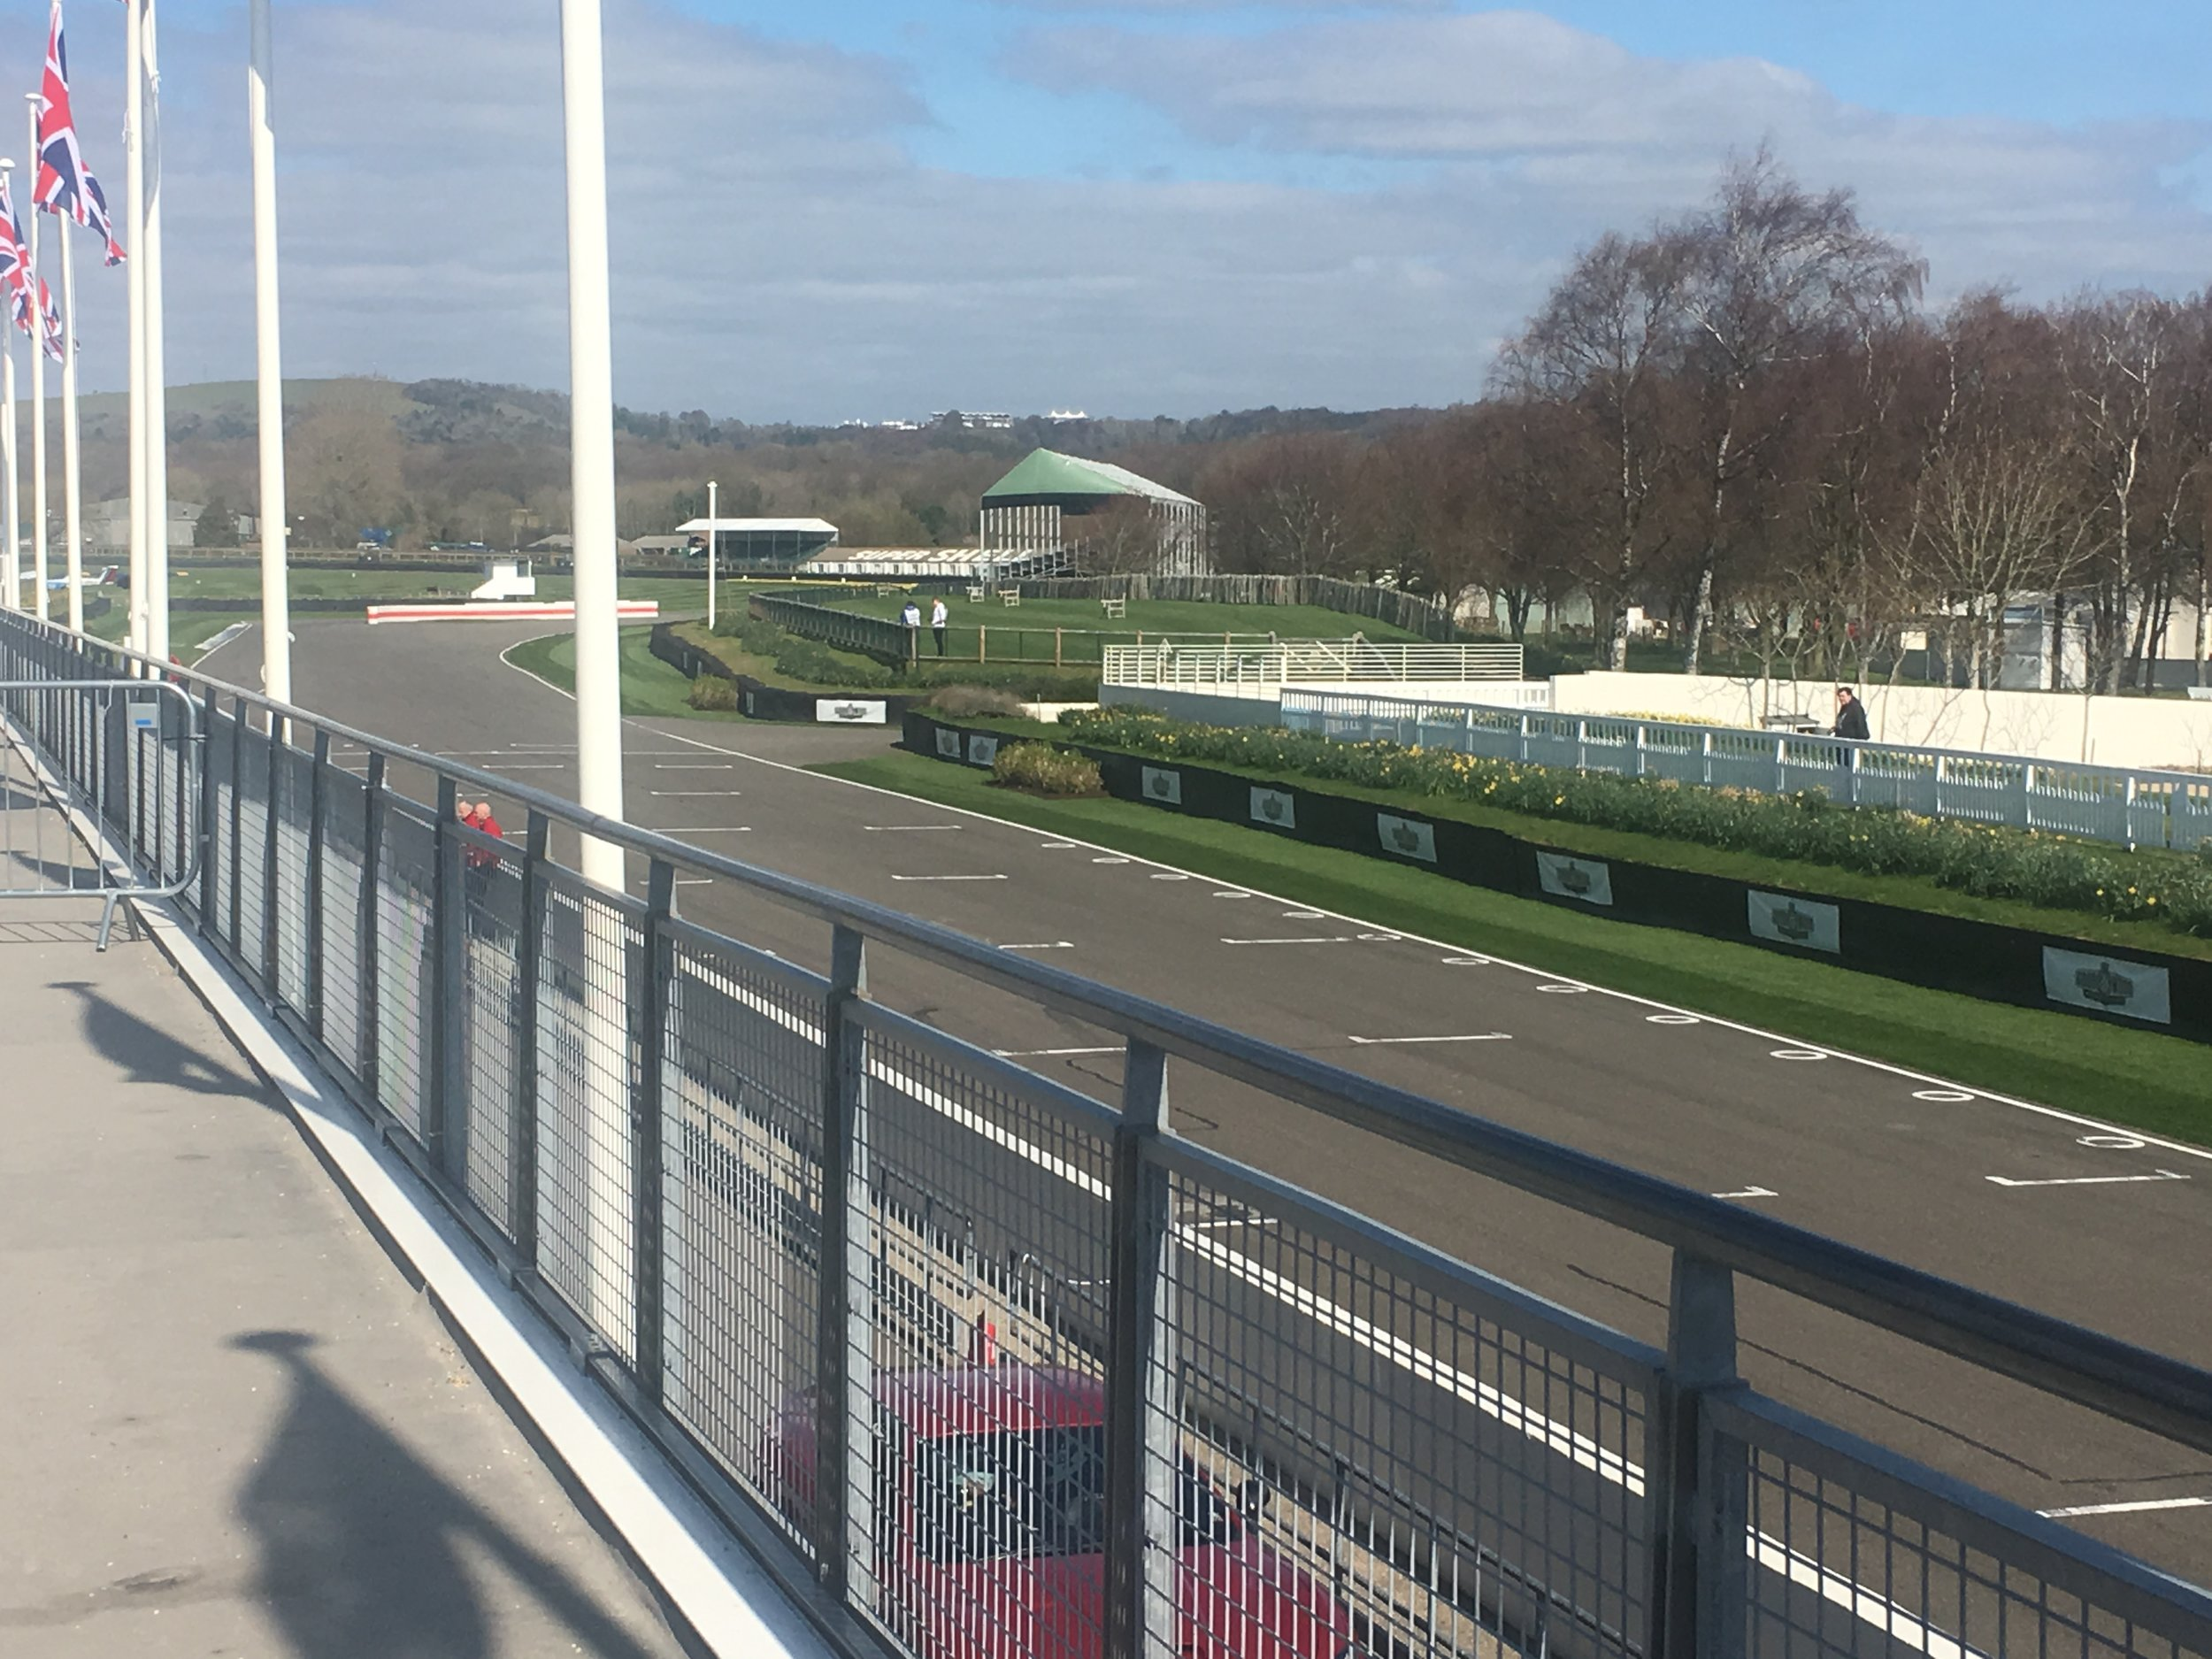 Goodwood in the sunshine